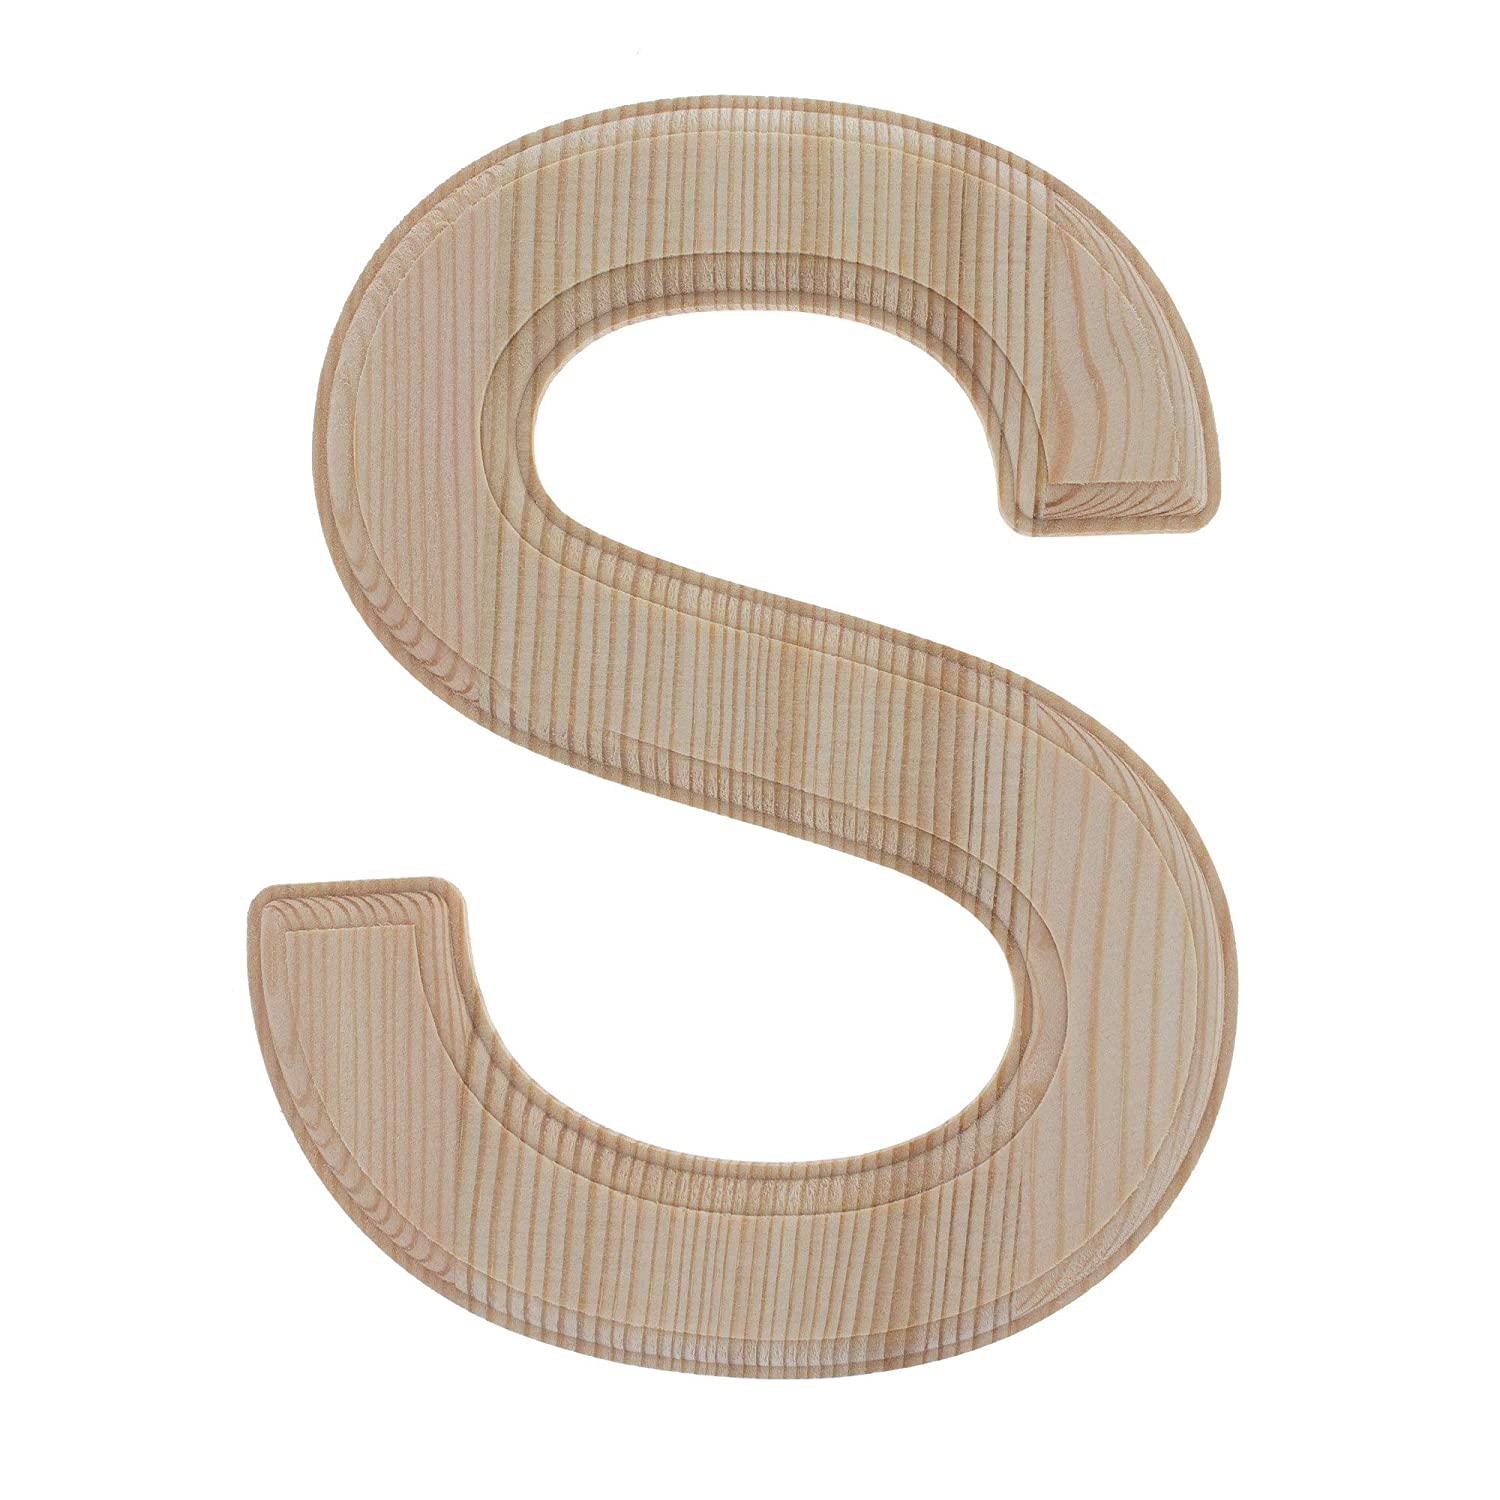 6.25 Inches BestPysanky Unfinished Wooden Letter L